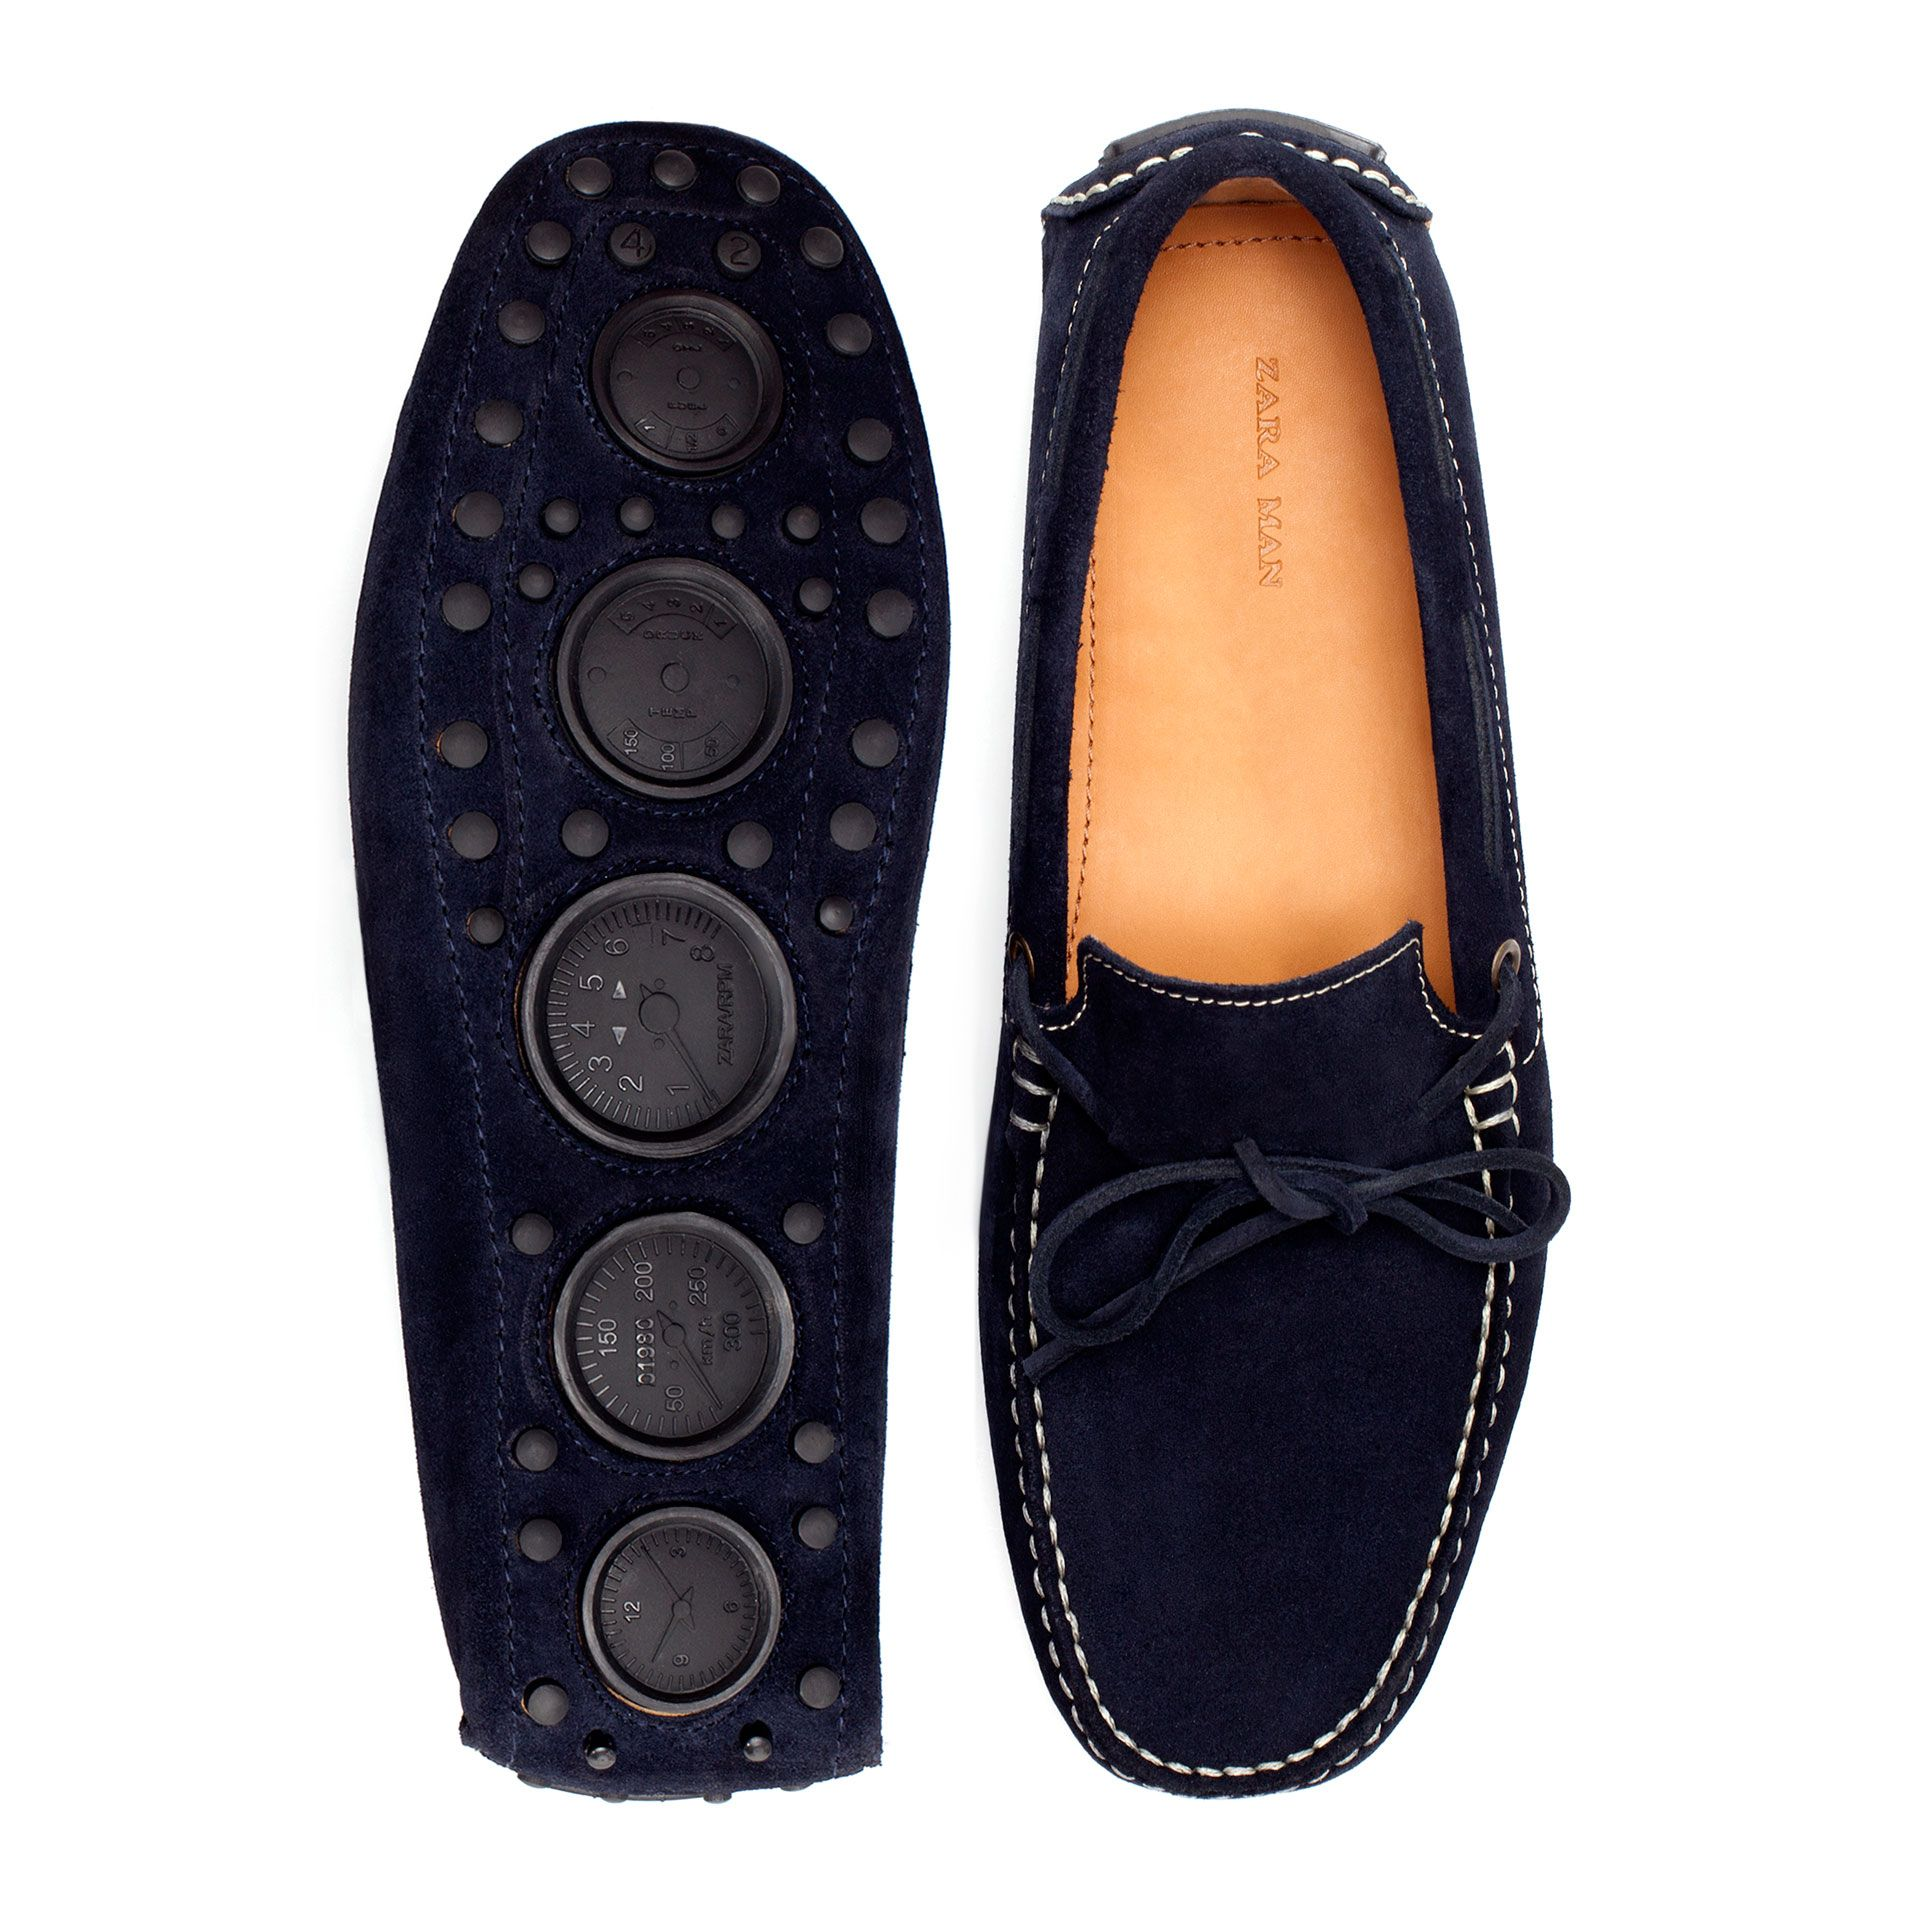 DRIVING MOCASSIN WITH BOW Moccasins Shoes Man ZARA